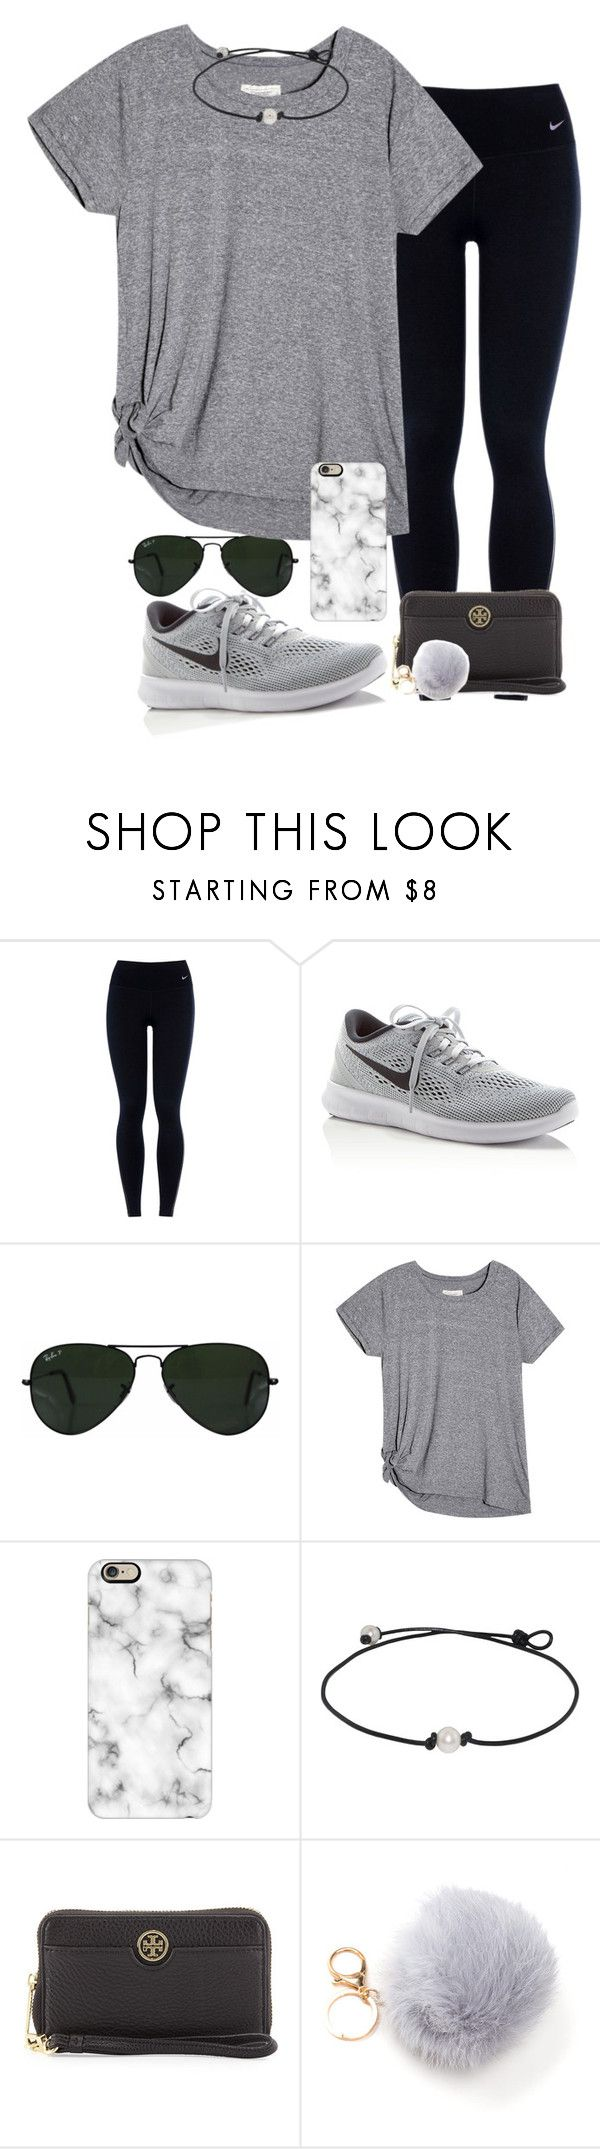 """I really struggle with layouts"" by valerienwashington ❤ liked on Polyvore featuring NIKE, Ray-Ban, Casetify and Tory Burch"